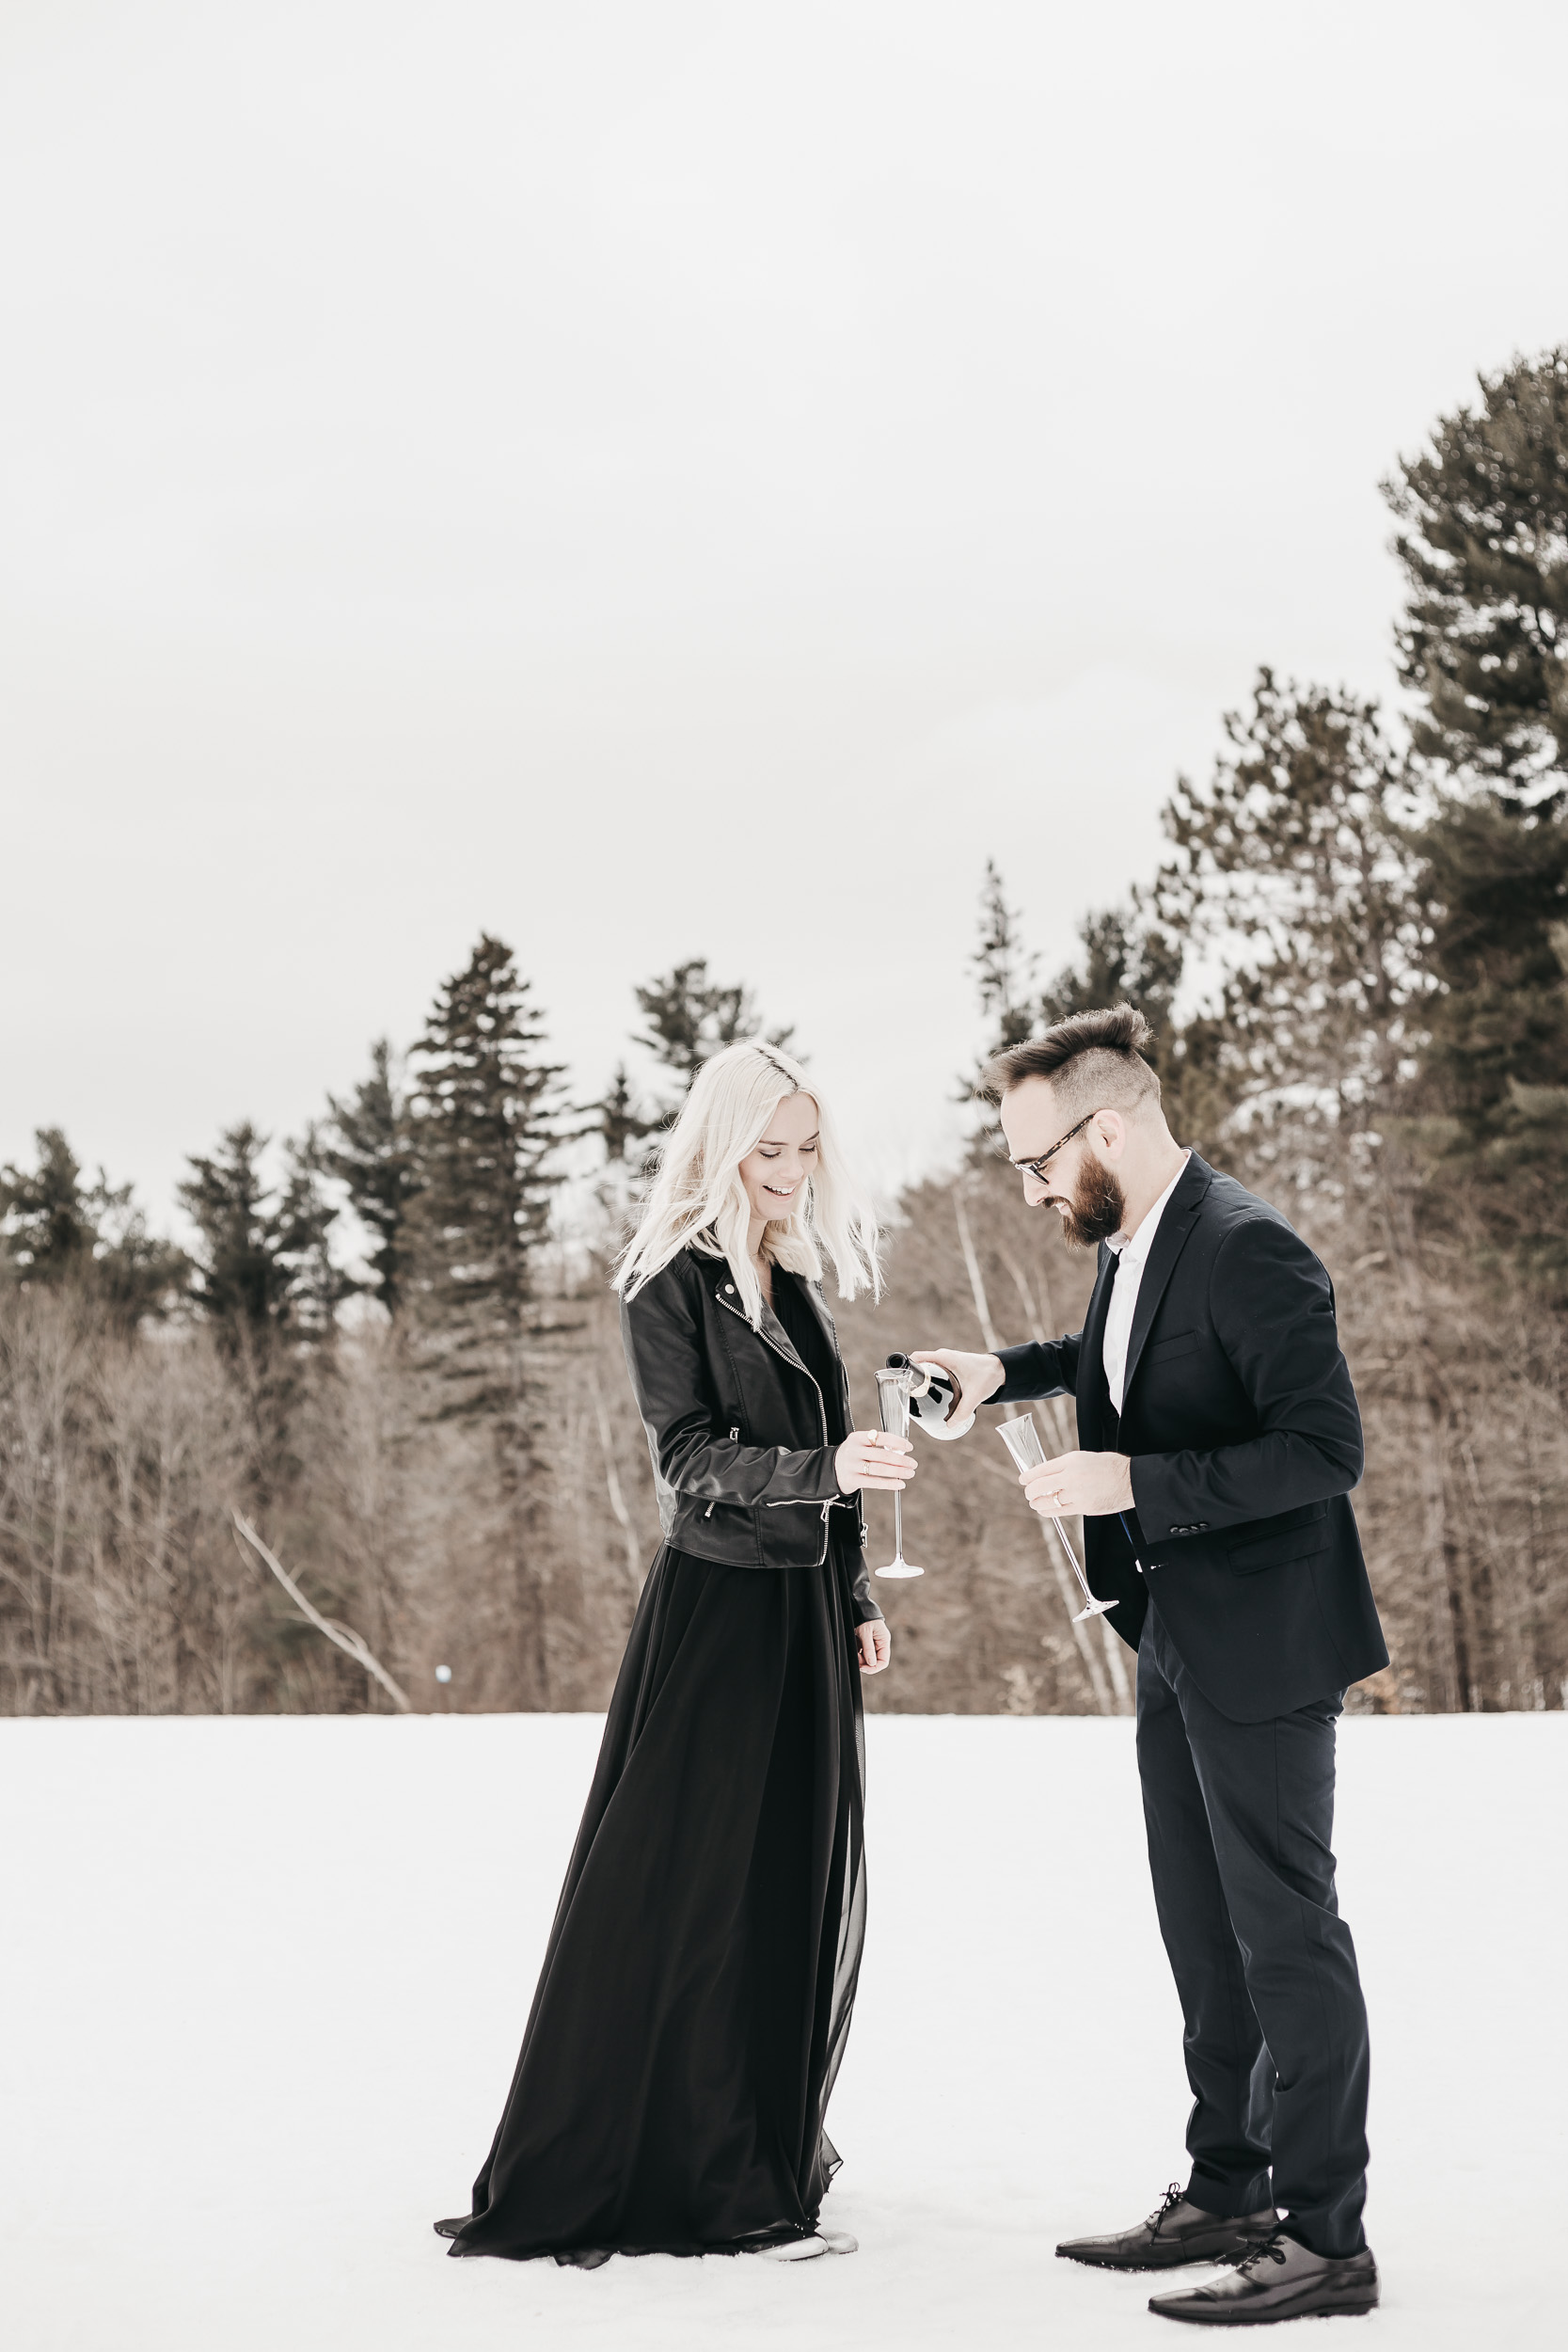 Ottawa-Elopement-Engagement-Photographer-96.jpg